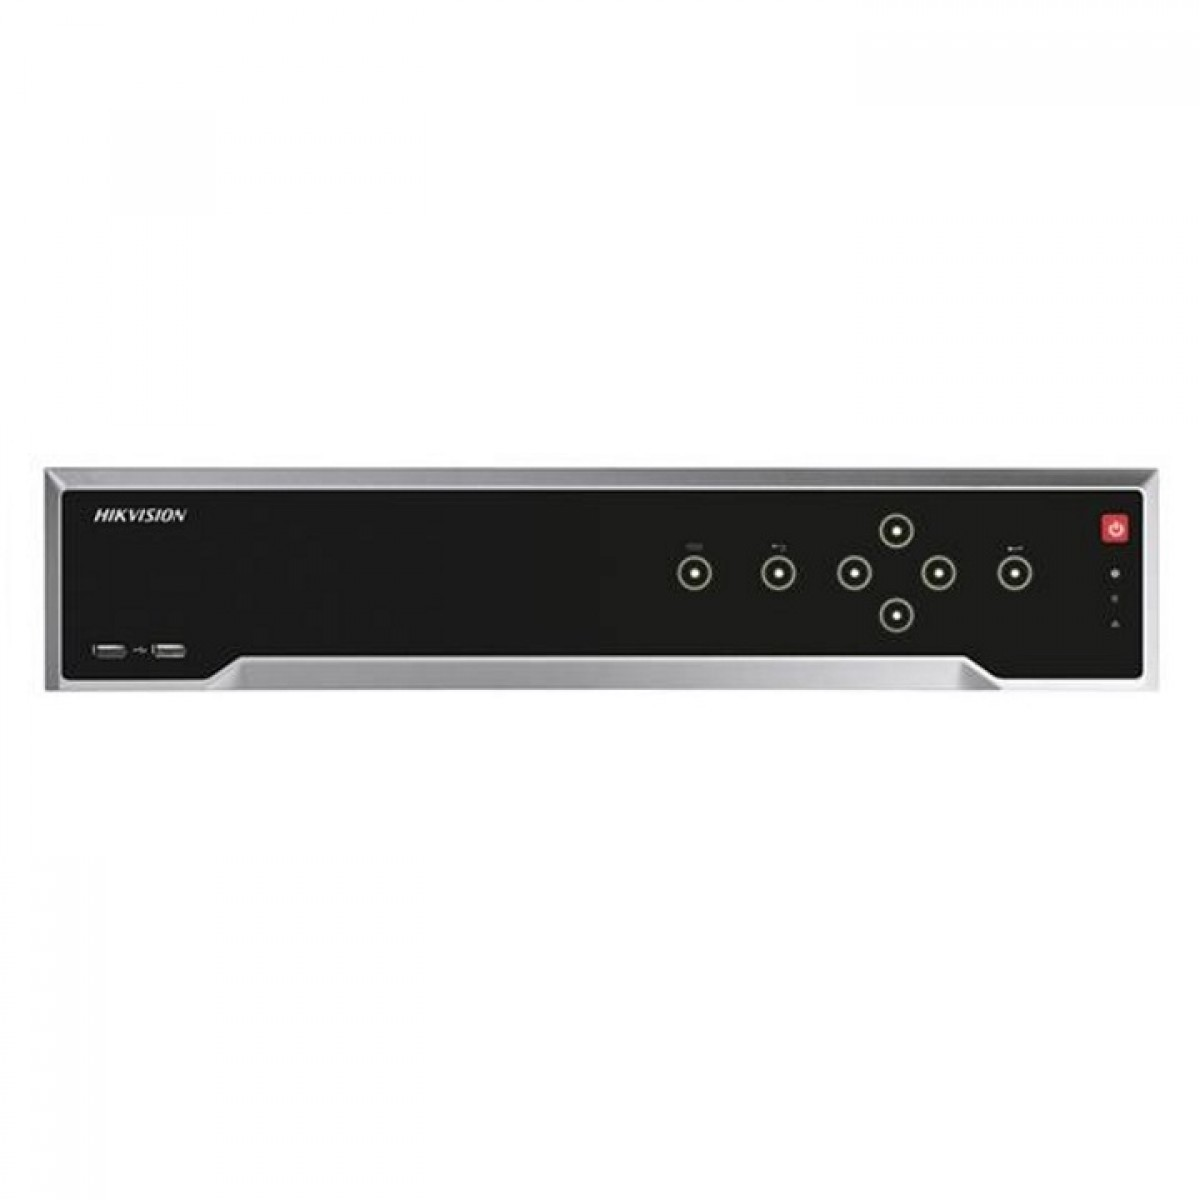 NVR DS-7716NI-I4/16P, 4 bay, 16 canale